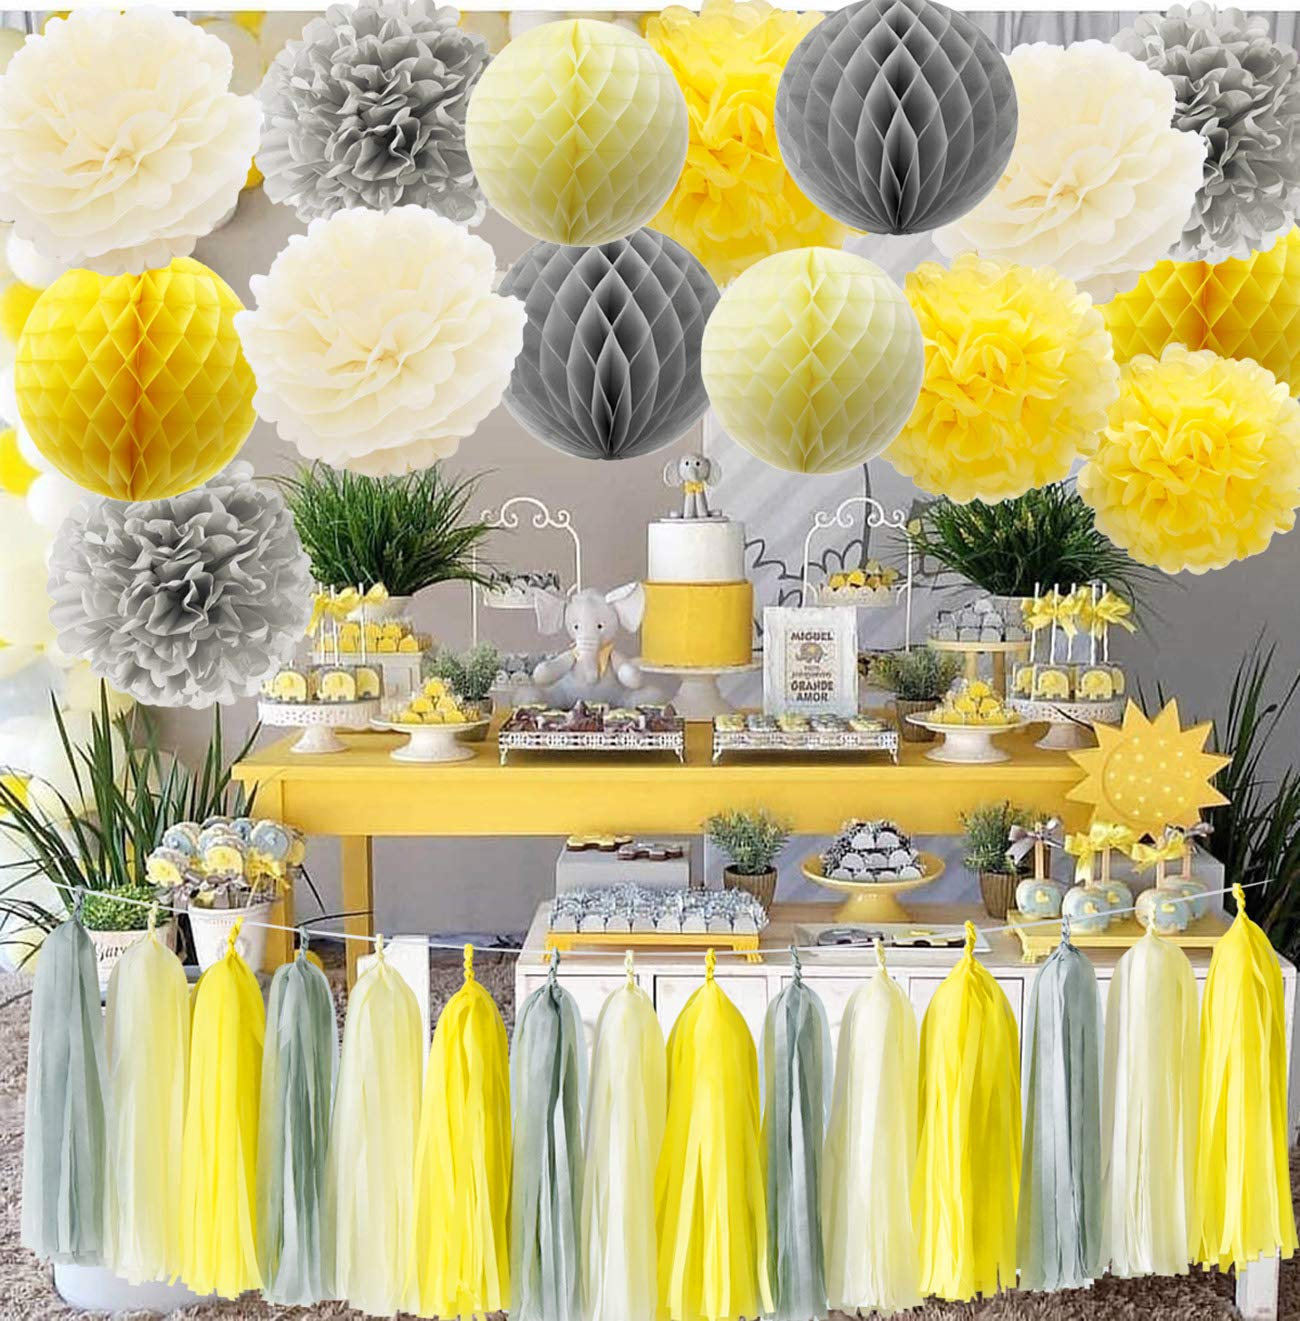 Happyfield You Are My Sunshine Party Decoration Yellow Grey Elephant